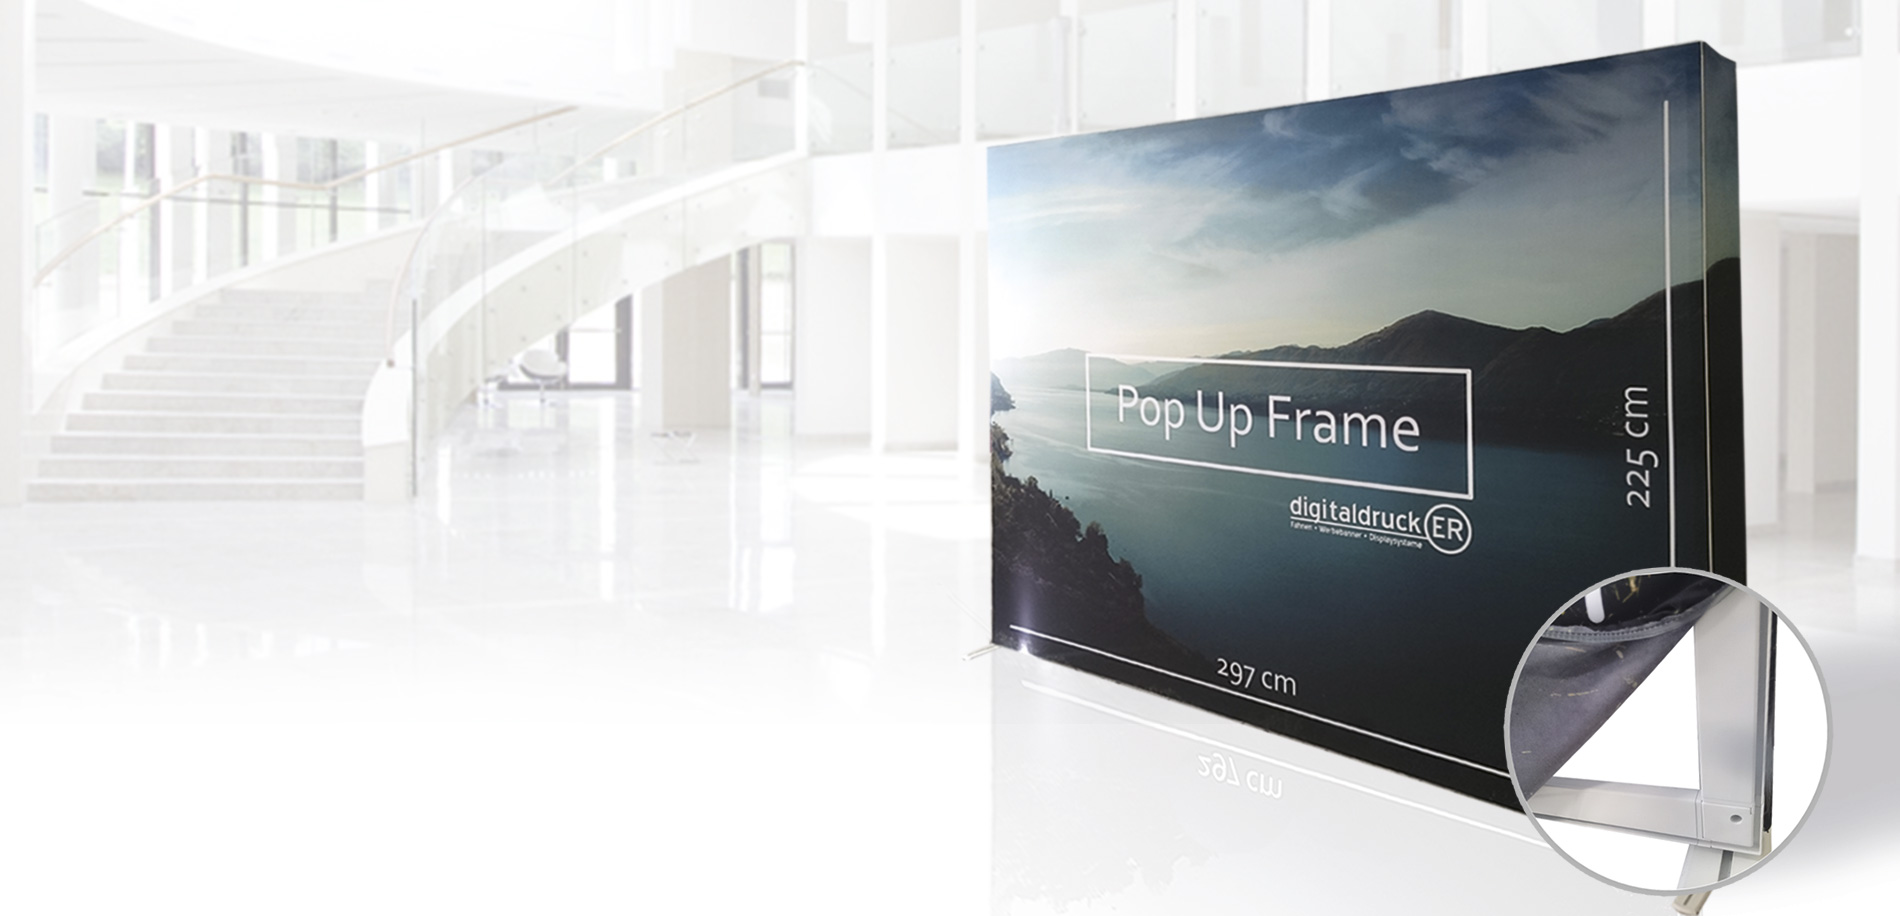 Pop-Up Frame